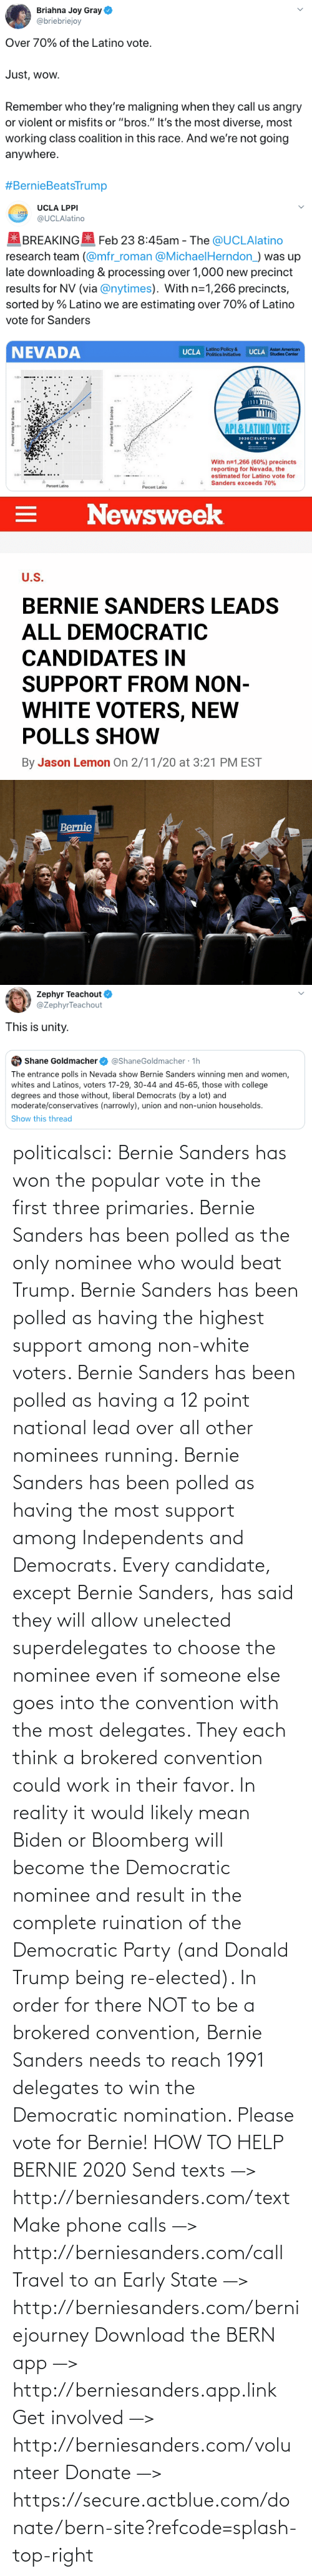 site: politicalsci: Bernie Sanders has won the popular vote in the first three primaries. Bernie Sanders has  been polled as the only nominee who would beat Trump. Bernie Sanders  has been polled as having the highest support among non-white voters.  Bernie Sanders has been polled as having a 12 point national lead over  all other nominees running. Bernie Sanders has been polled as having the most support among Independents and Democrats.  Every candidate, except Bernie Sanders, has said they will allow  unelected superdelegates to choose the nominee even if someone else goes  into the convention with the most delegates. They each think a brokered  convention could work in their favor. In  reality it would likely mean Biden or Bloomberg will become the  Democratic nominee and result in the complete ruination of the  Democratic Party (and Donald Trump being re-elected). In order for there  NOT to be a brokered  convention, Bernie Sanders needs to reach 1991 delegates to win the  Democratic  nomination. Please vote for Bernie!  HOW TO HELP BERNIE 2020 Send texts —> http://berniesanders.com/text  Make phone calls —> http://berniesanders.com/call  Travel to an Early State —> http://berniesanders.com/berniejourney  Download the BERN app —> http://berniesanders.app.link  Get involved —> http://berniesanders.com/volunteer Donate —> https://secure.actblue.com/donate/bern-site?refcode=splash-top-right